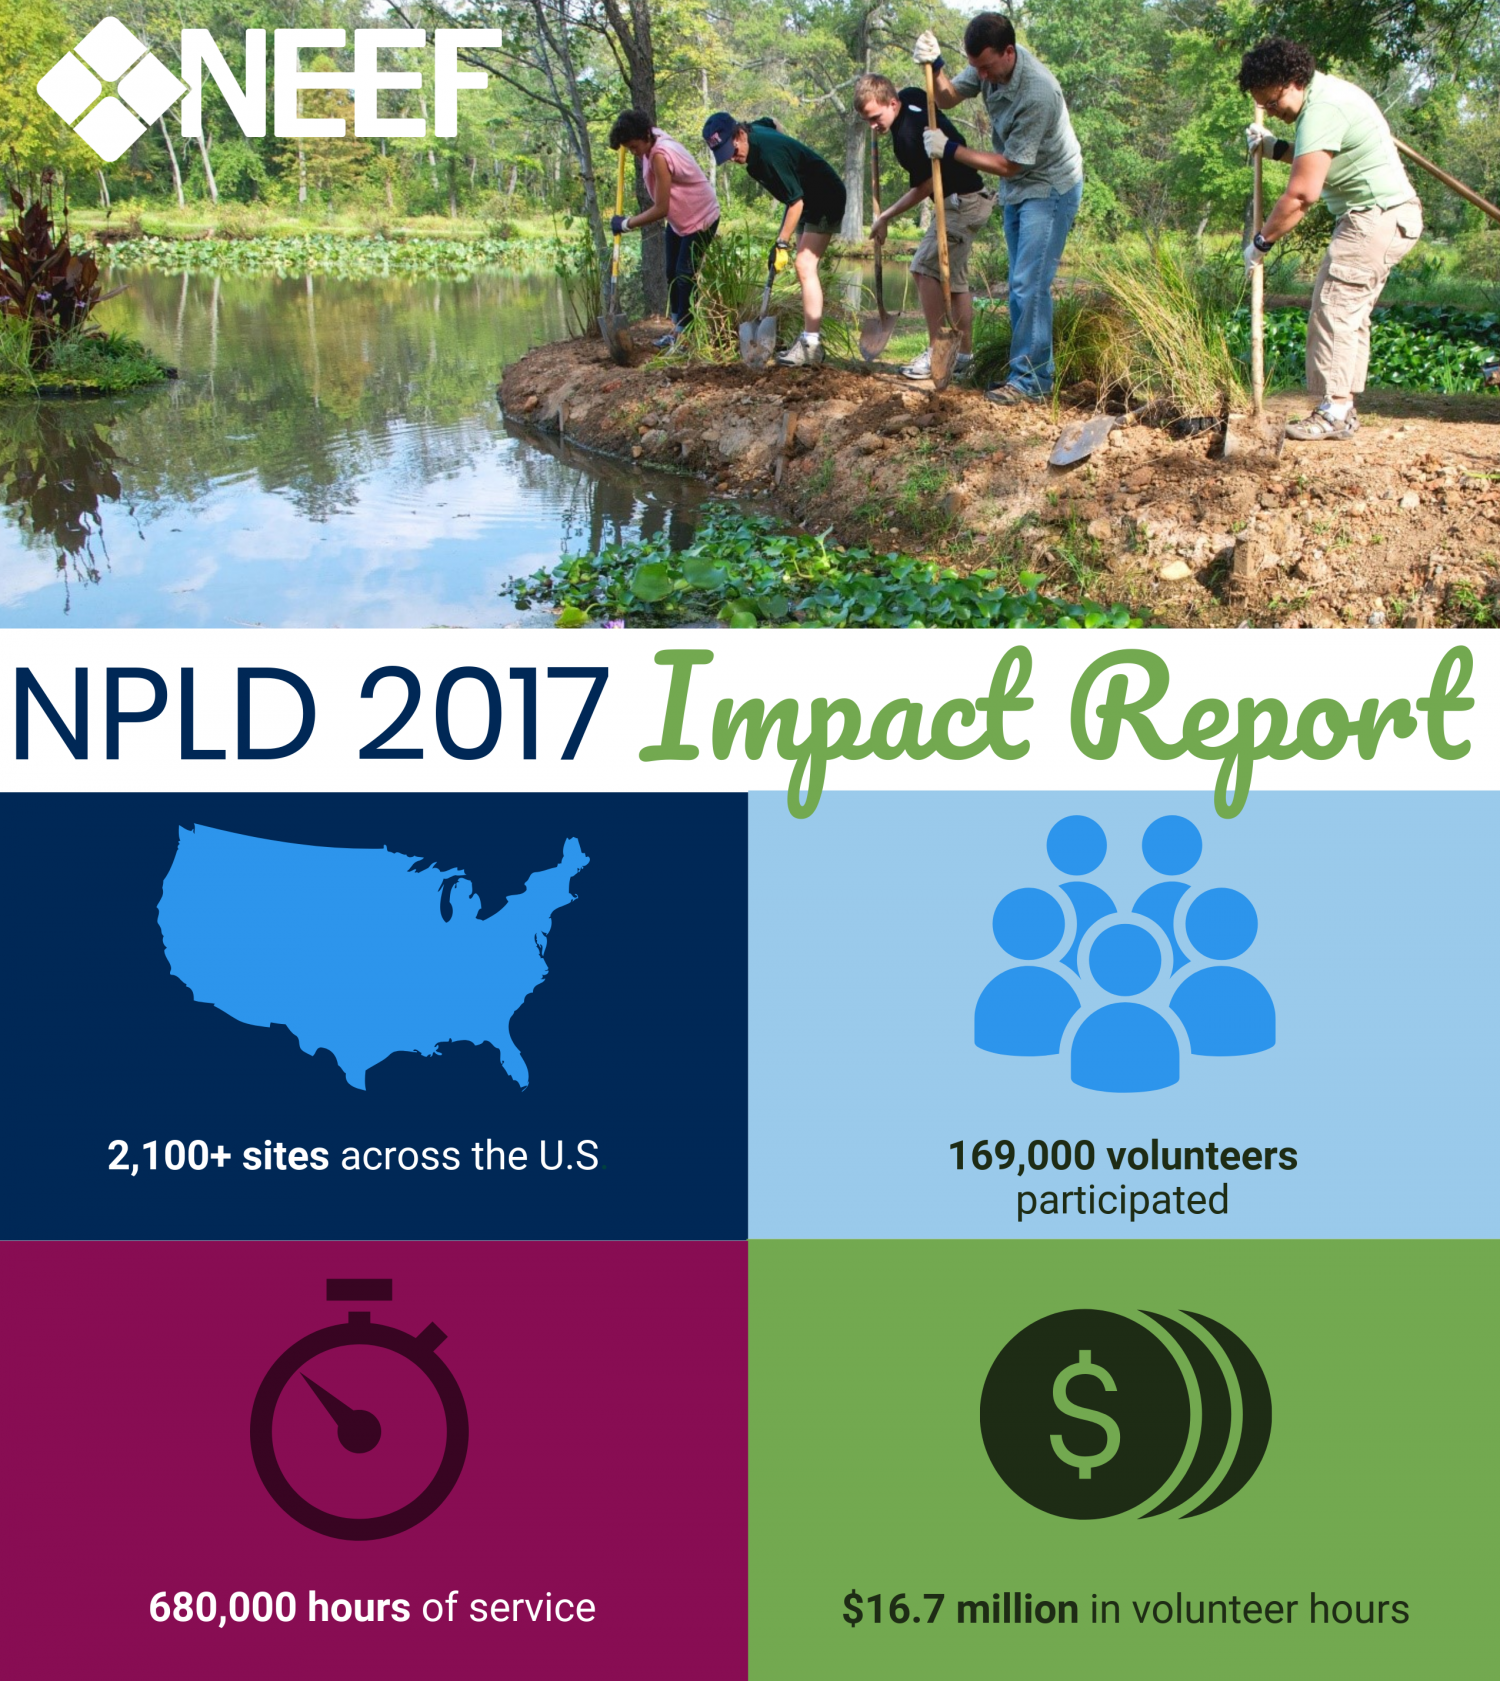 2017 Impact Report; 2,100 sites, 169,000 volunteers, 680,000 hours, $16.7million